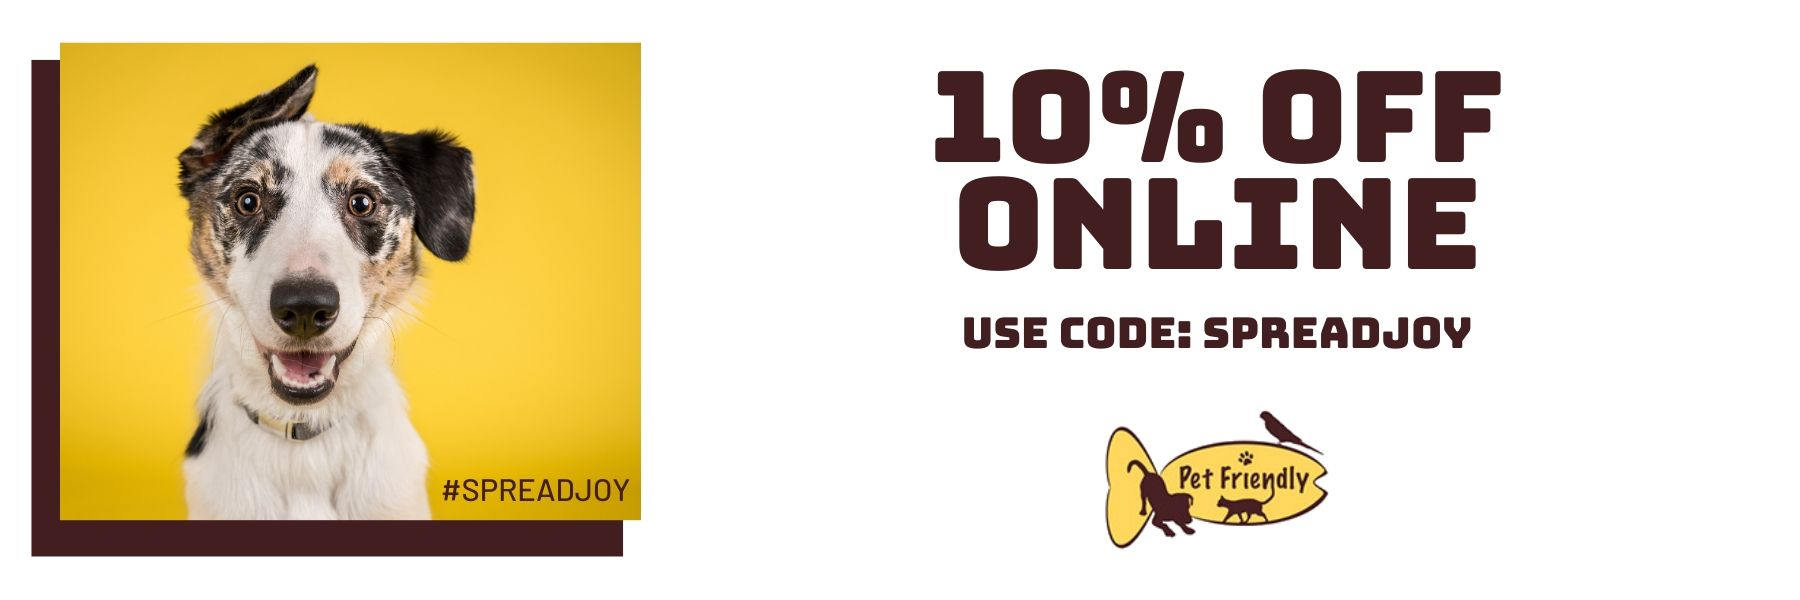 Use code SPREADJOY at checkout to save 10% on your online order.